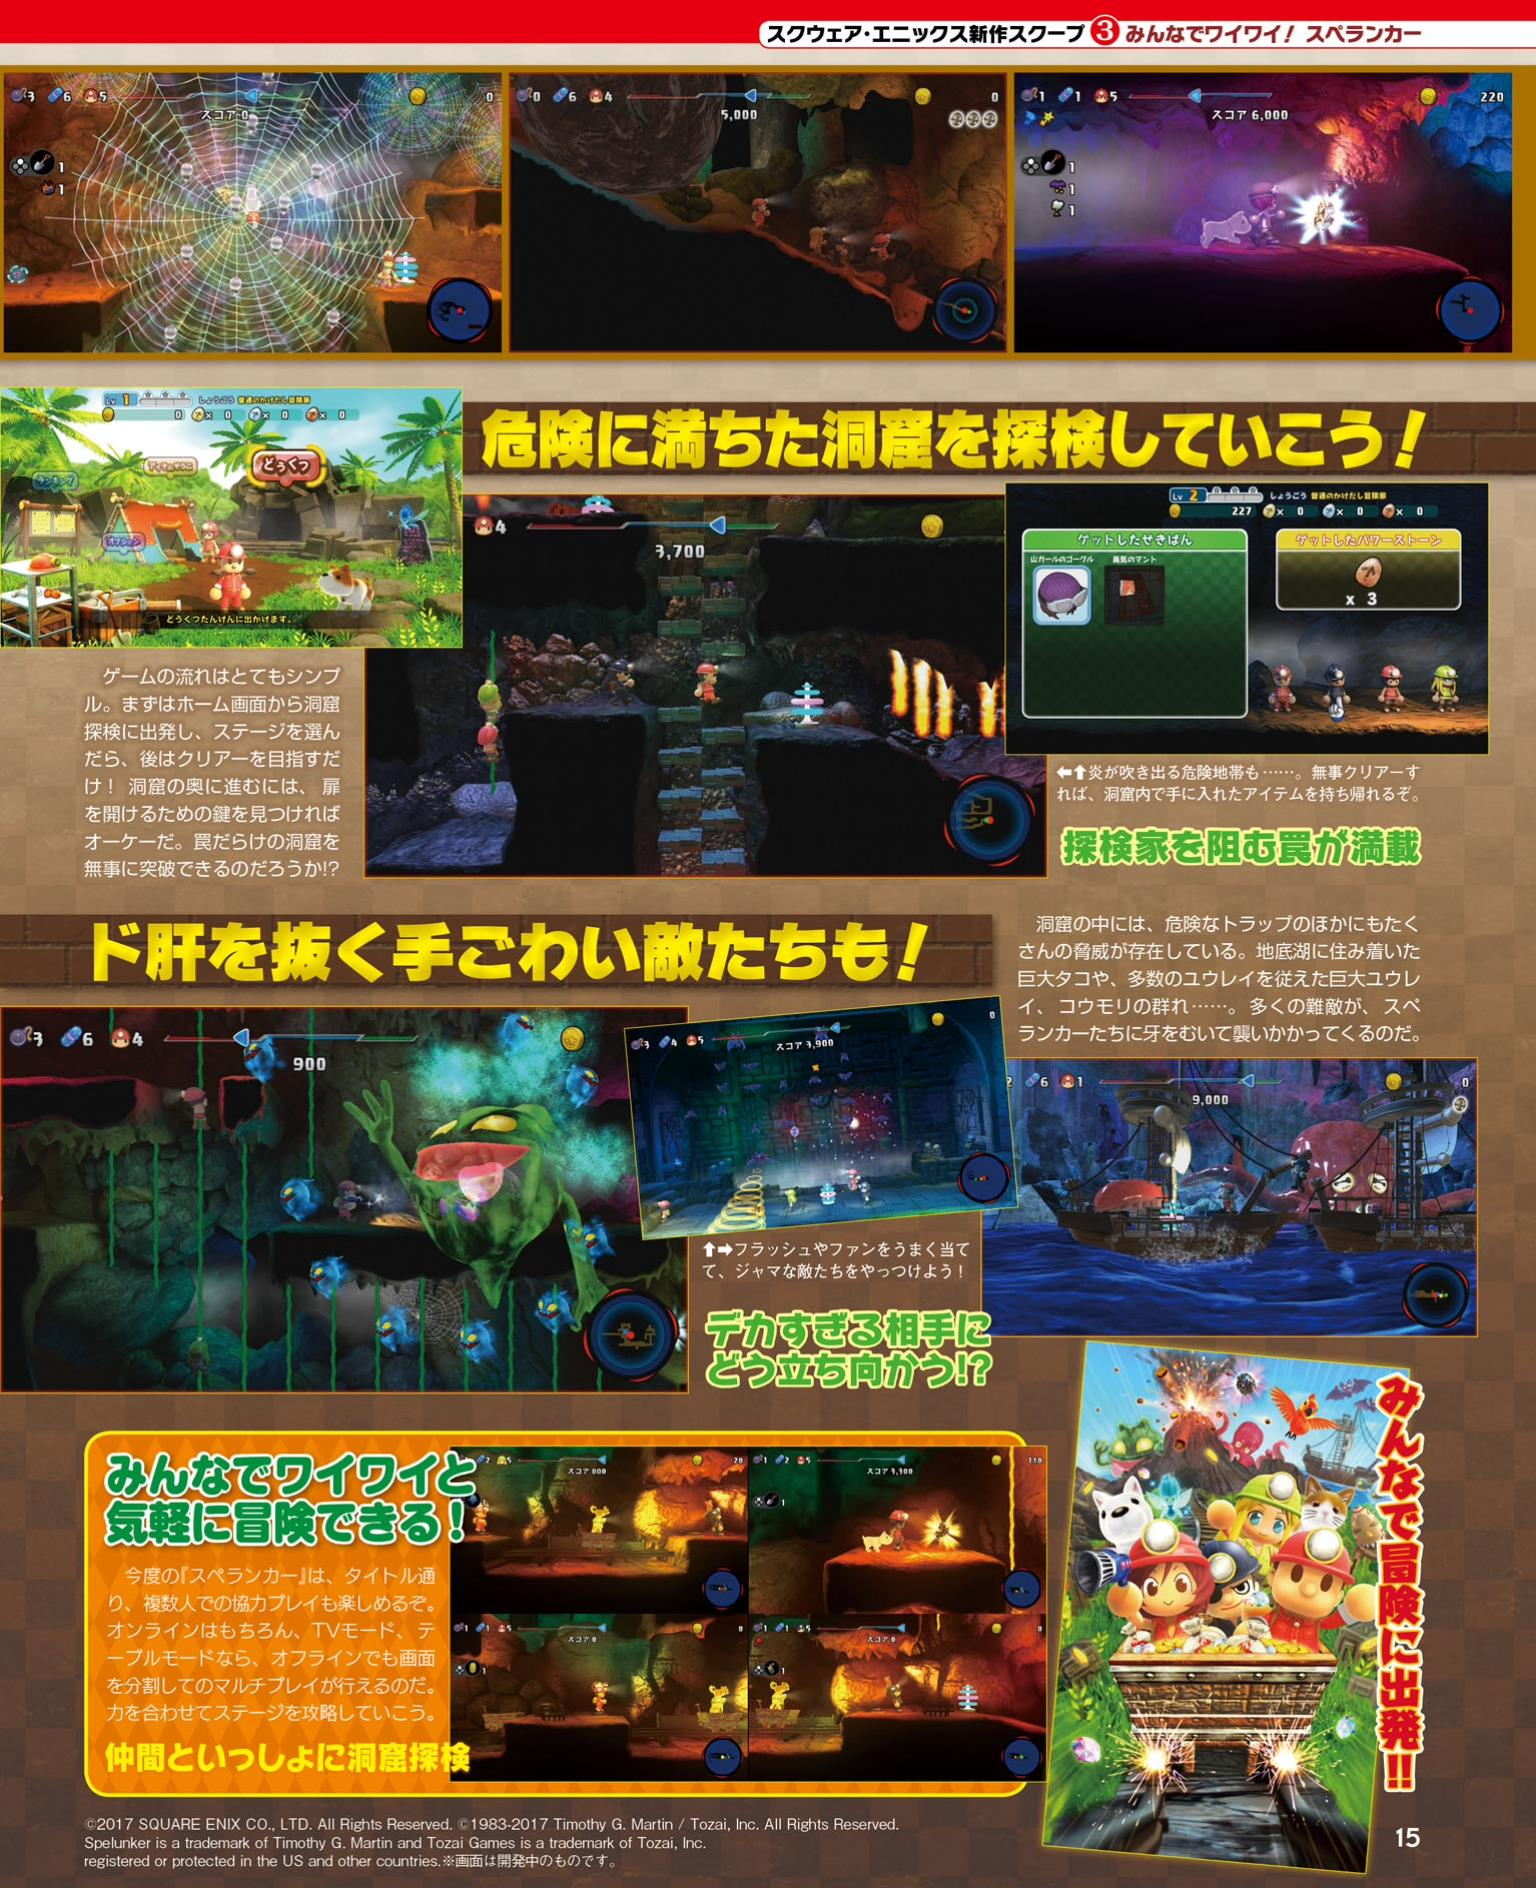 Scans roundup - Switch games, Attack on Titan, Dragon Quest Monsters